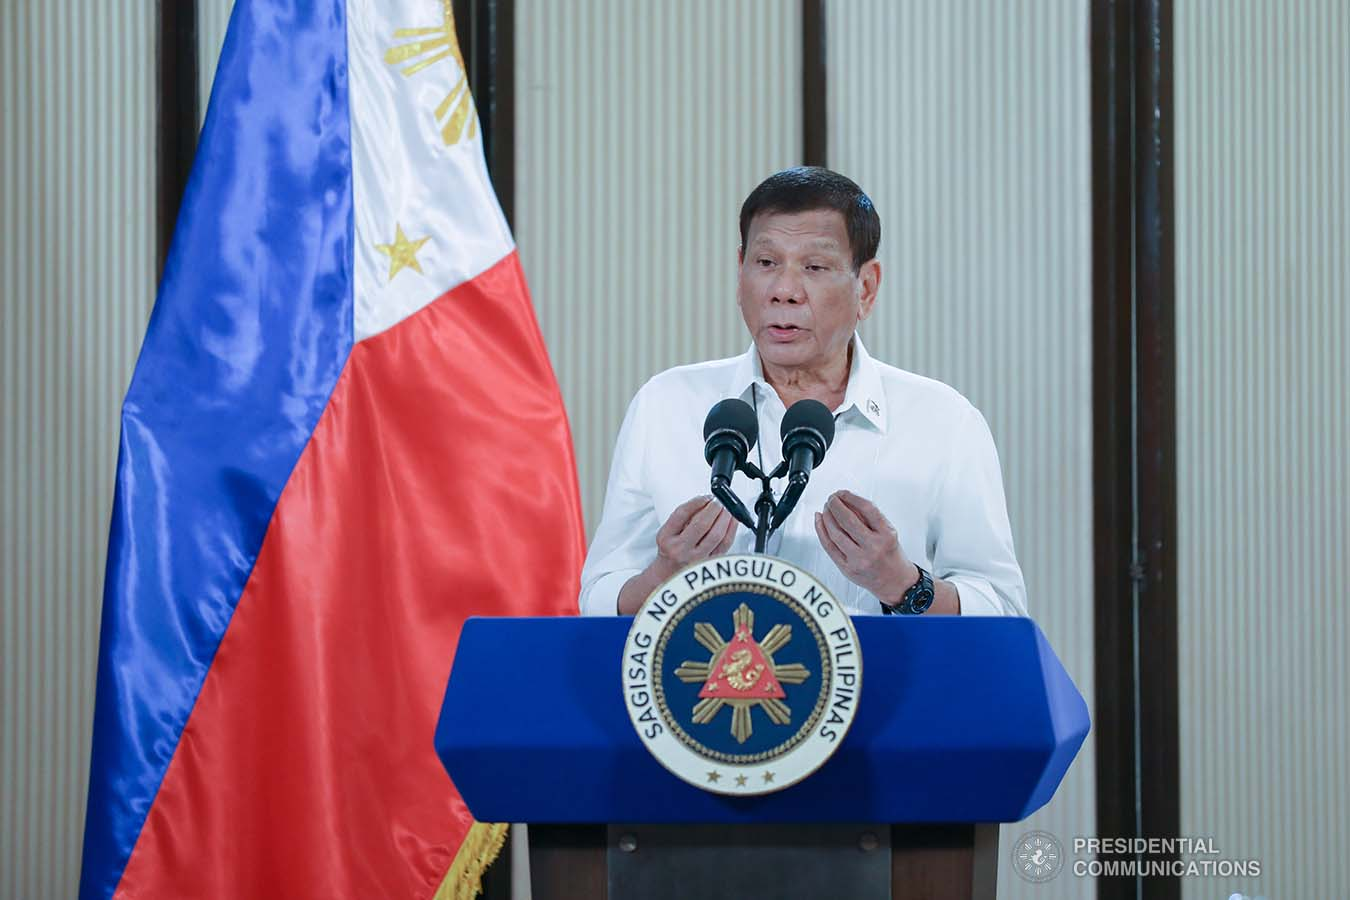 President Rodrigo Roa Duterte congratulates the personnel of the Philippine Army and Philippine Air Force for their successful operations against the New People's Army as he delivers a speech following a meeting at the Malago Clubhouse in Malacañang, Manila on May 26, 2020. KARL NORMAN ALONZO/PRESIDENTIAL PHOTO